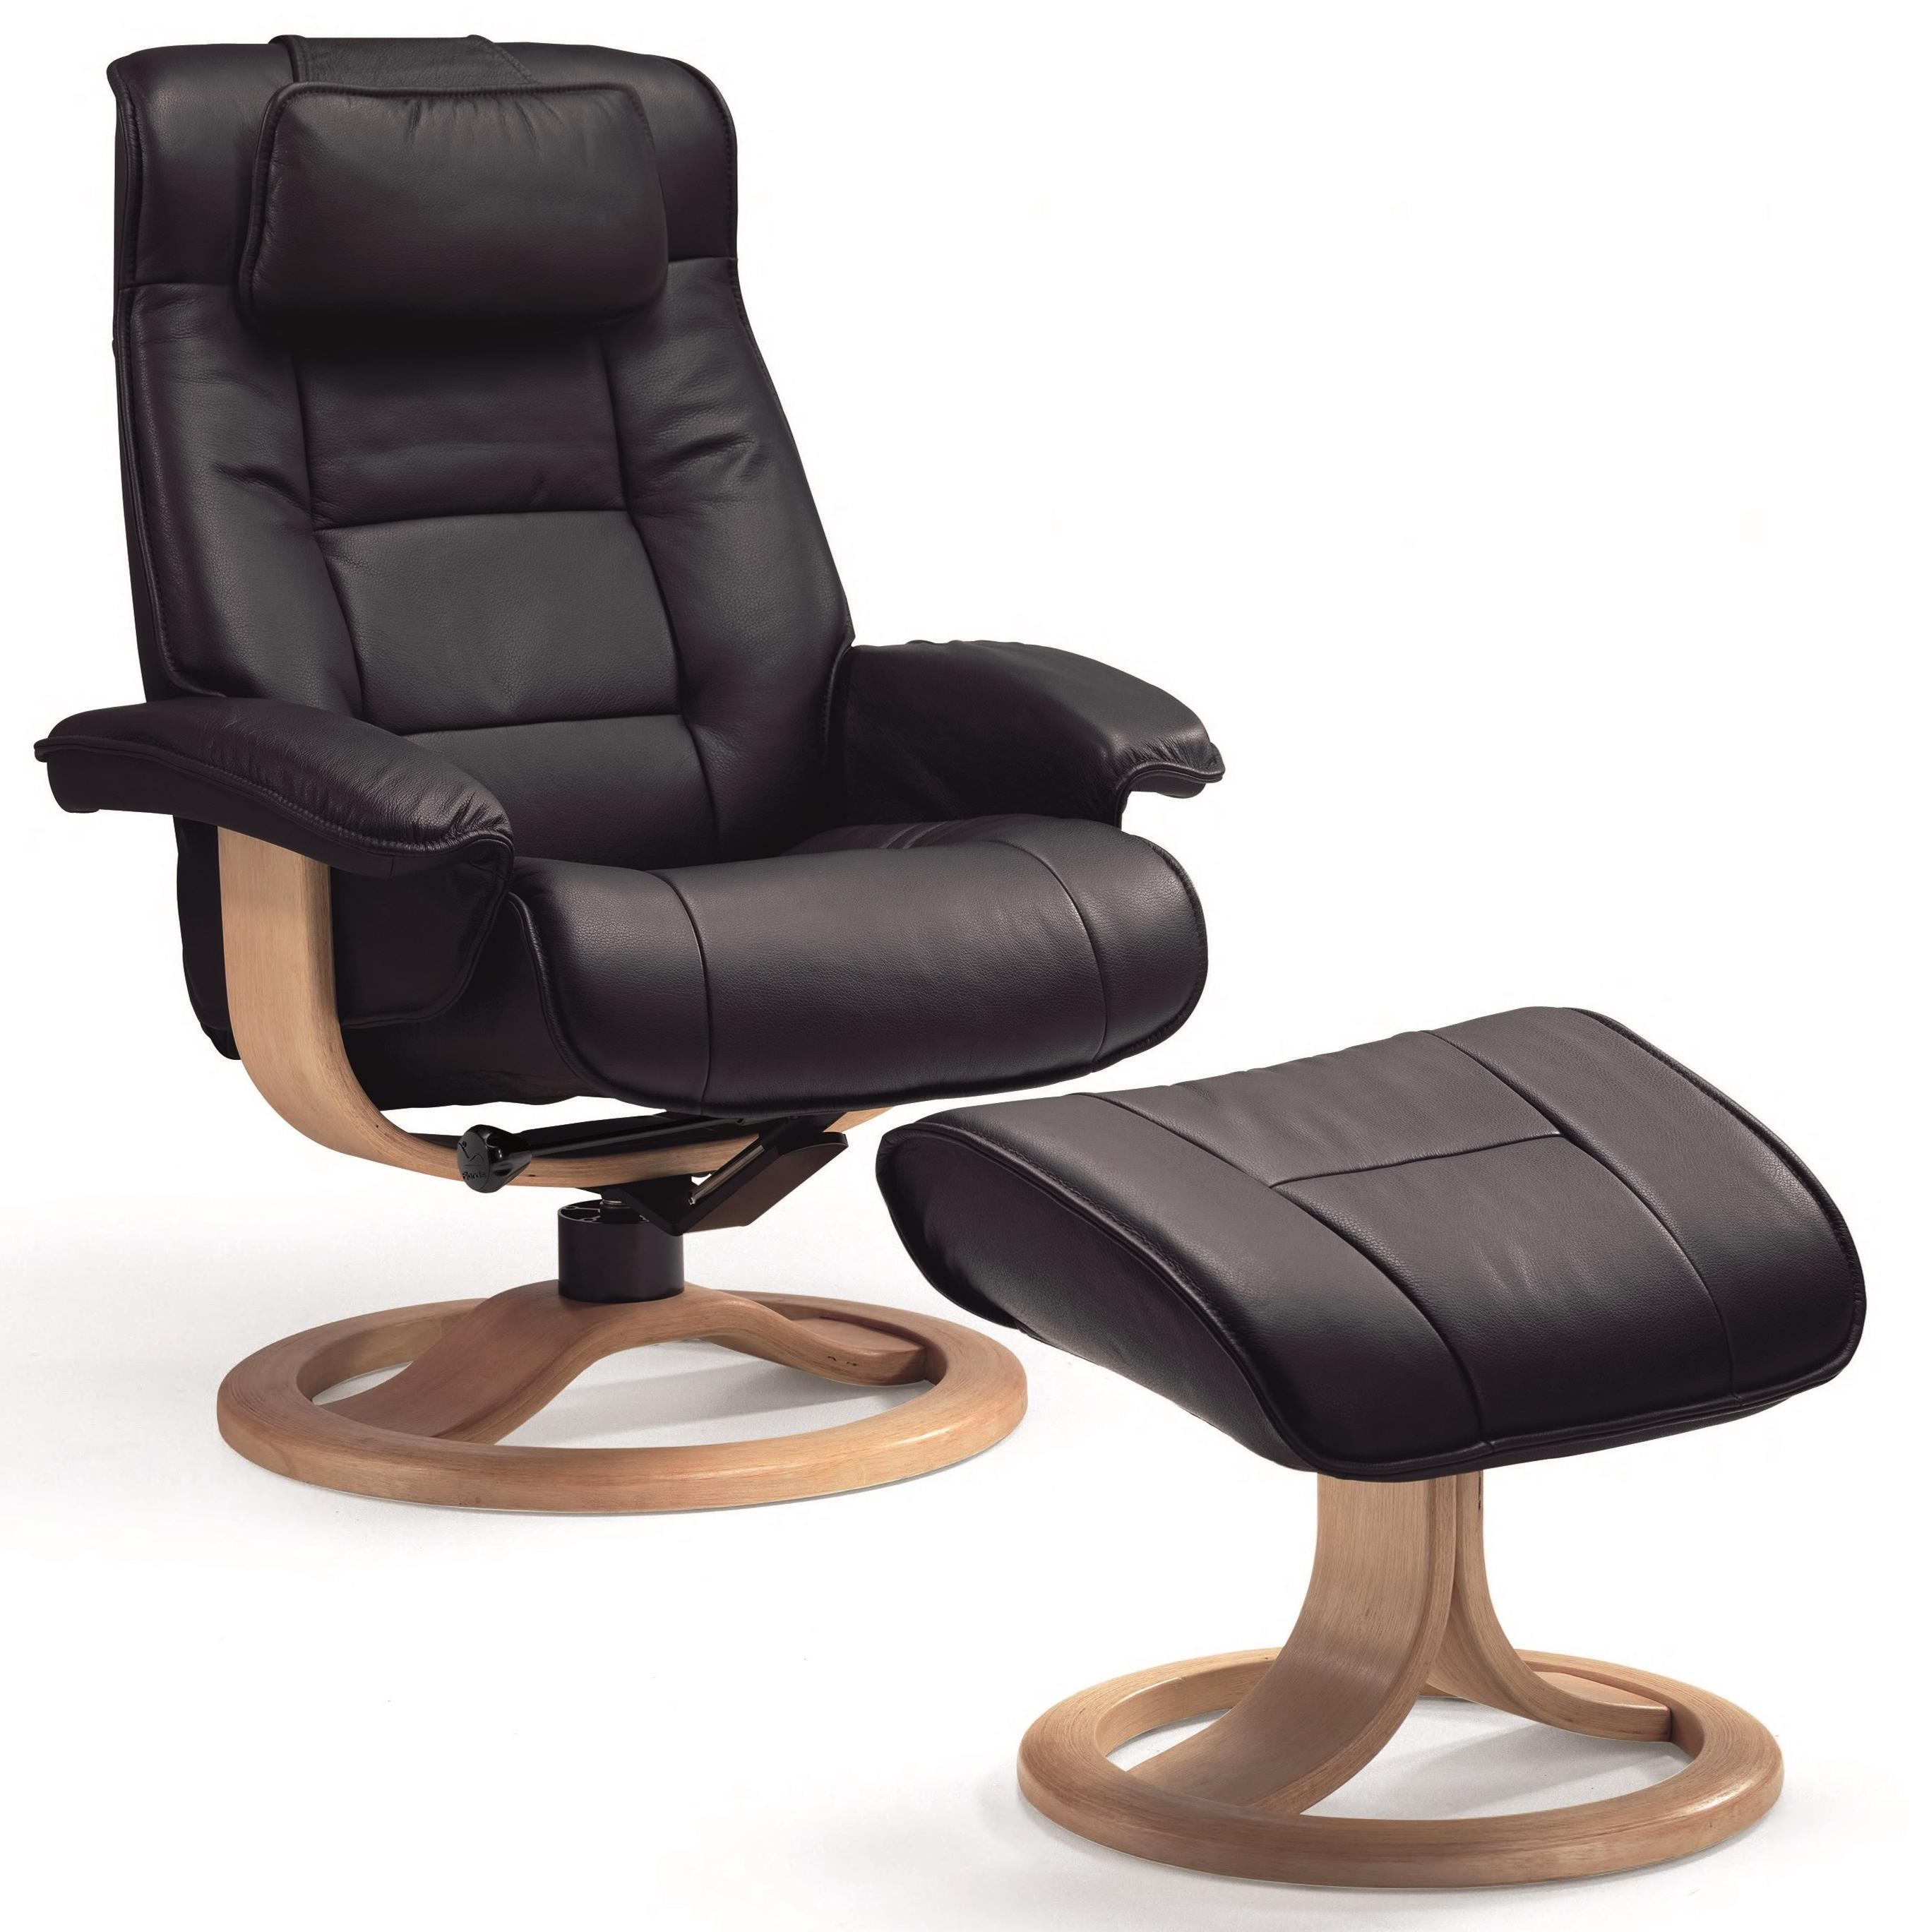 Mustang Small Recliner and Ottoman Set by Fjords by Hjellegjerde at Saugerties Furniture Mart